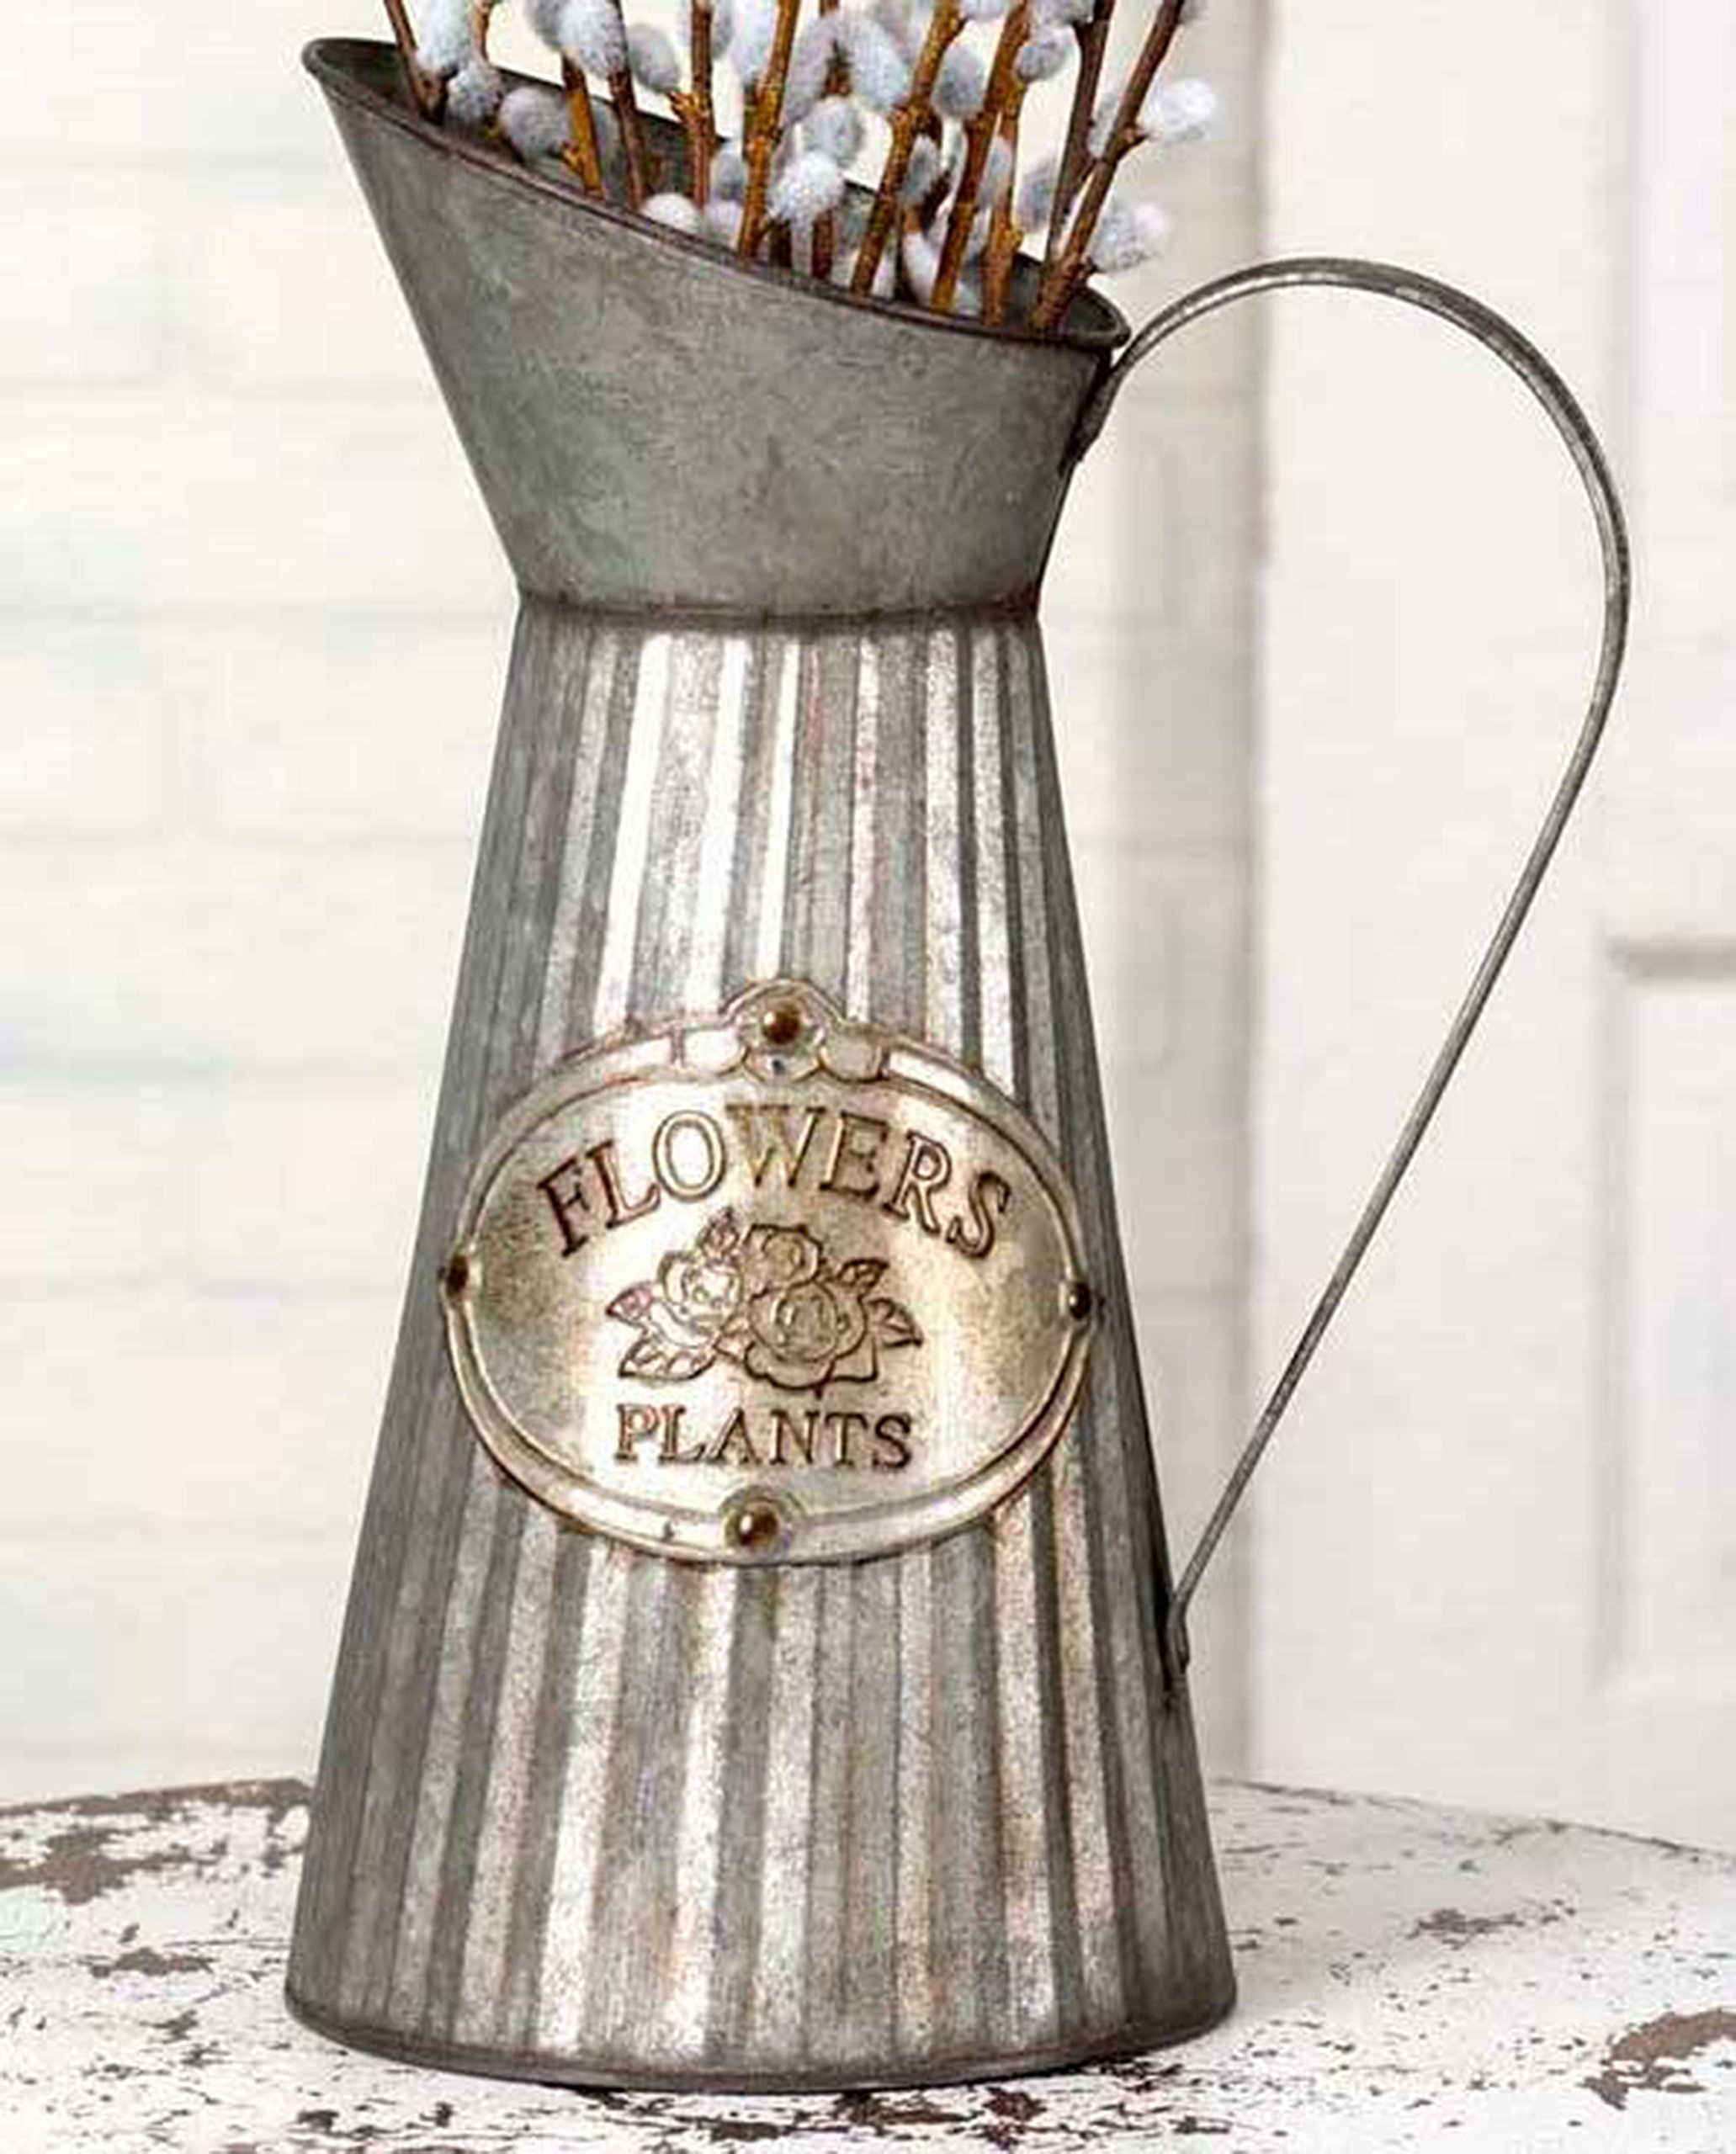 Vintage Style Metal Flower Pitcher Country Decor by Private Label